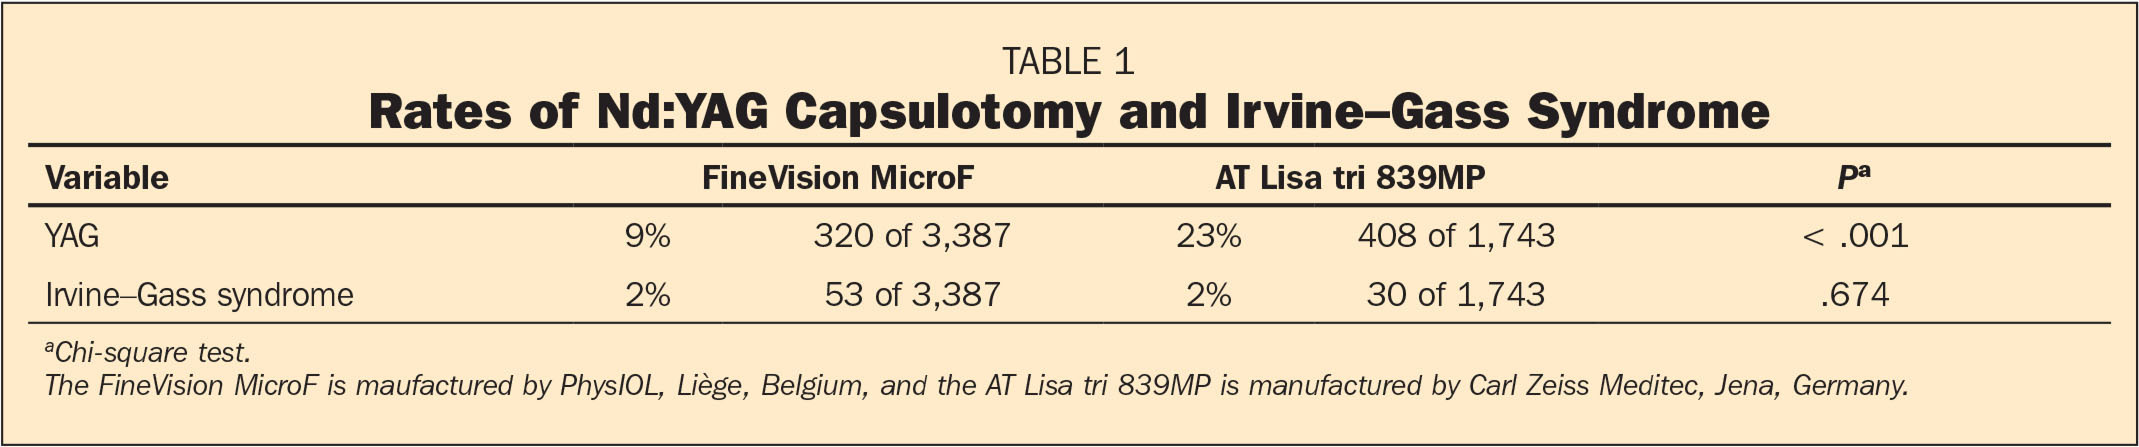 Rates of Nd:YAG Capsulotomy and Irvine–Gass Syndrome